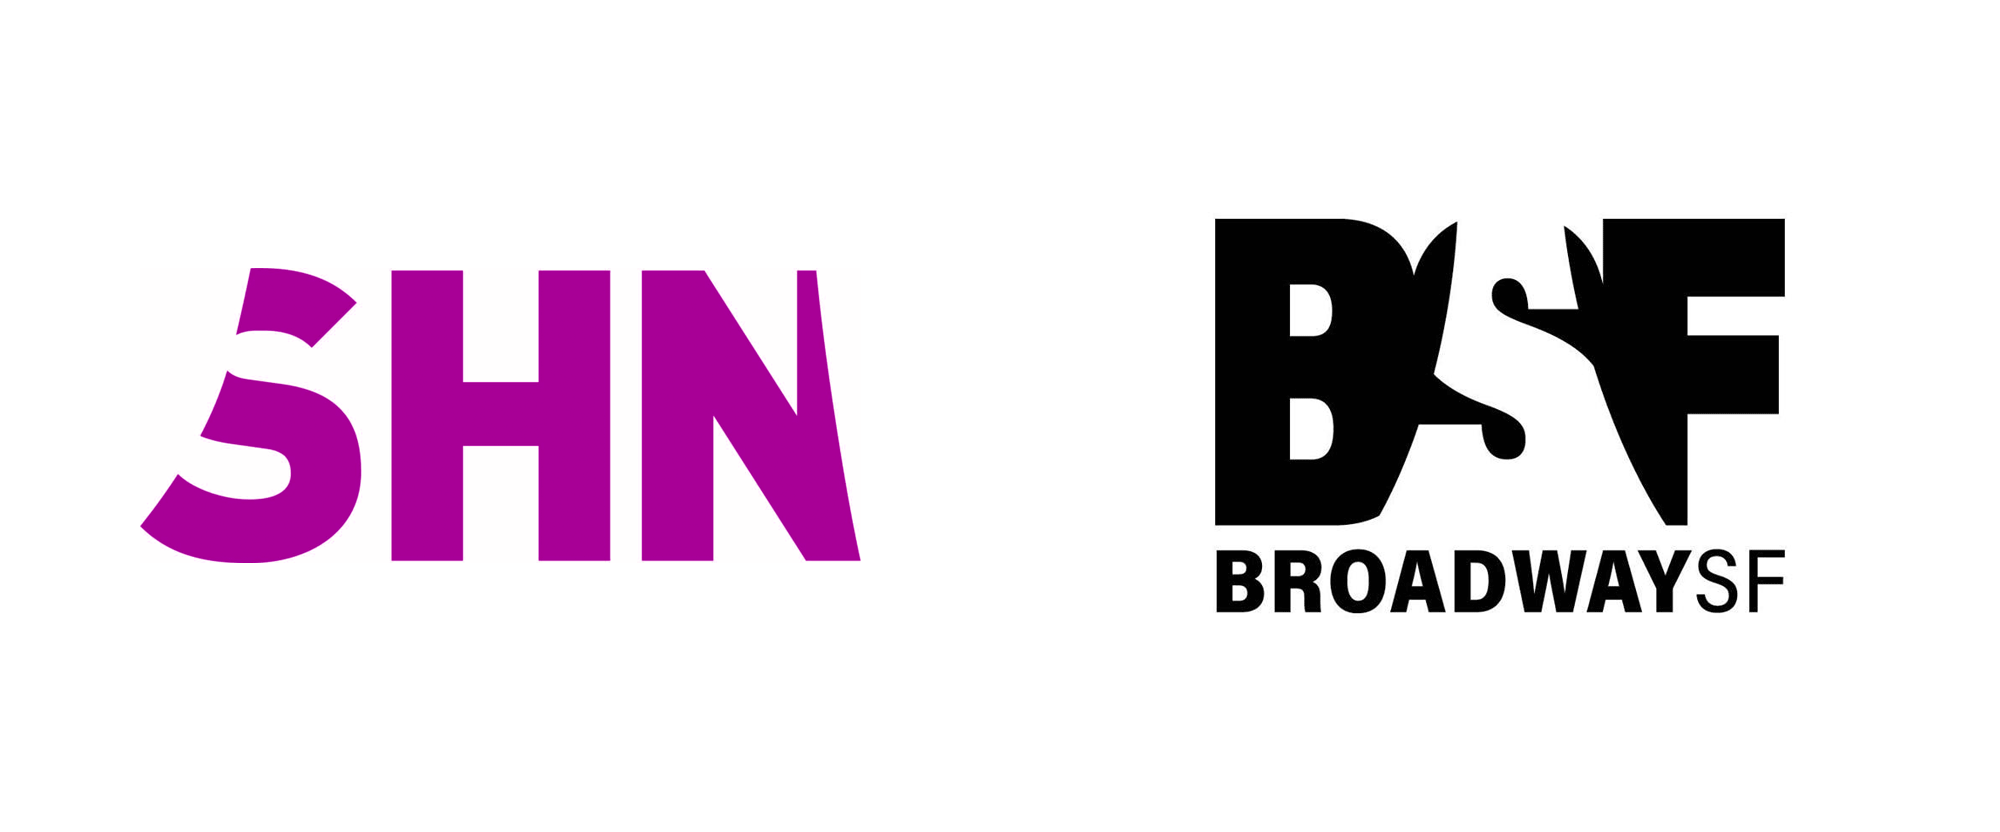 New Name and Logo for BroadwaySF